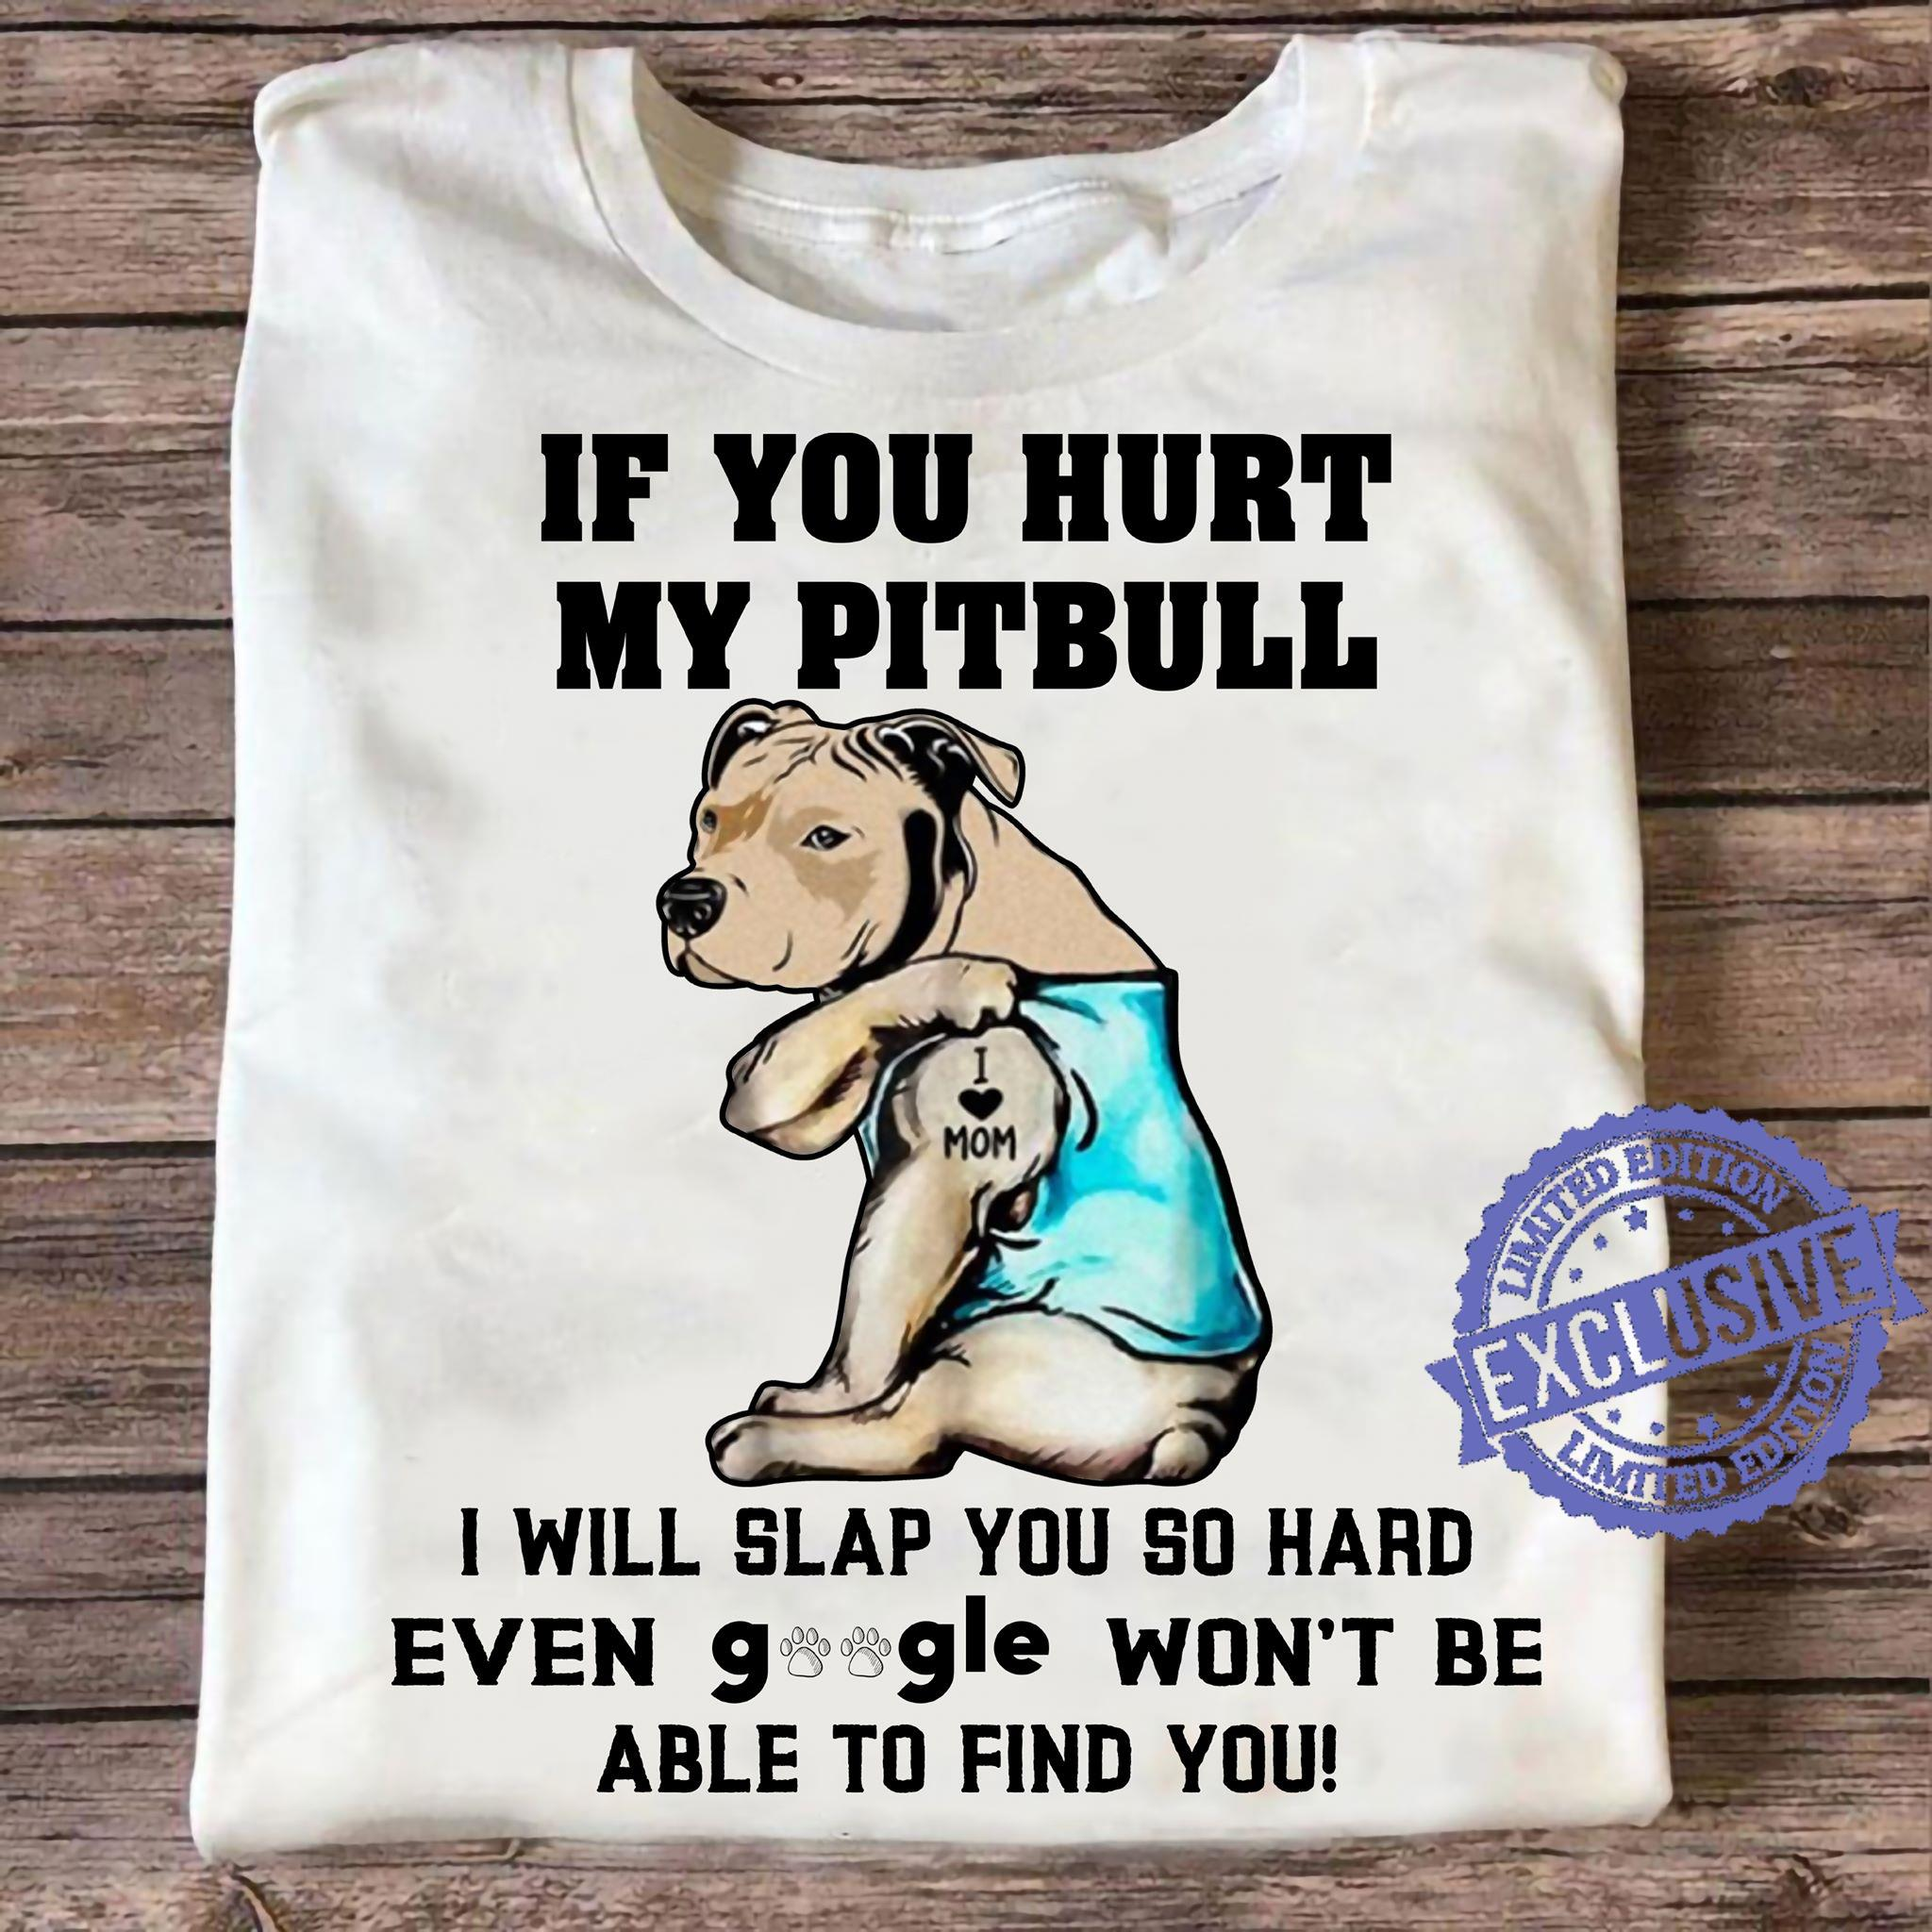 If you hurt my pitbull i will slap you so hard even google won't be able to find you shirt